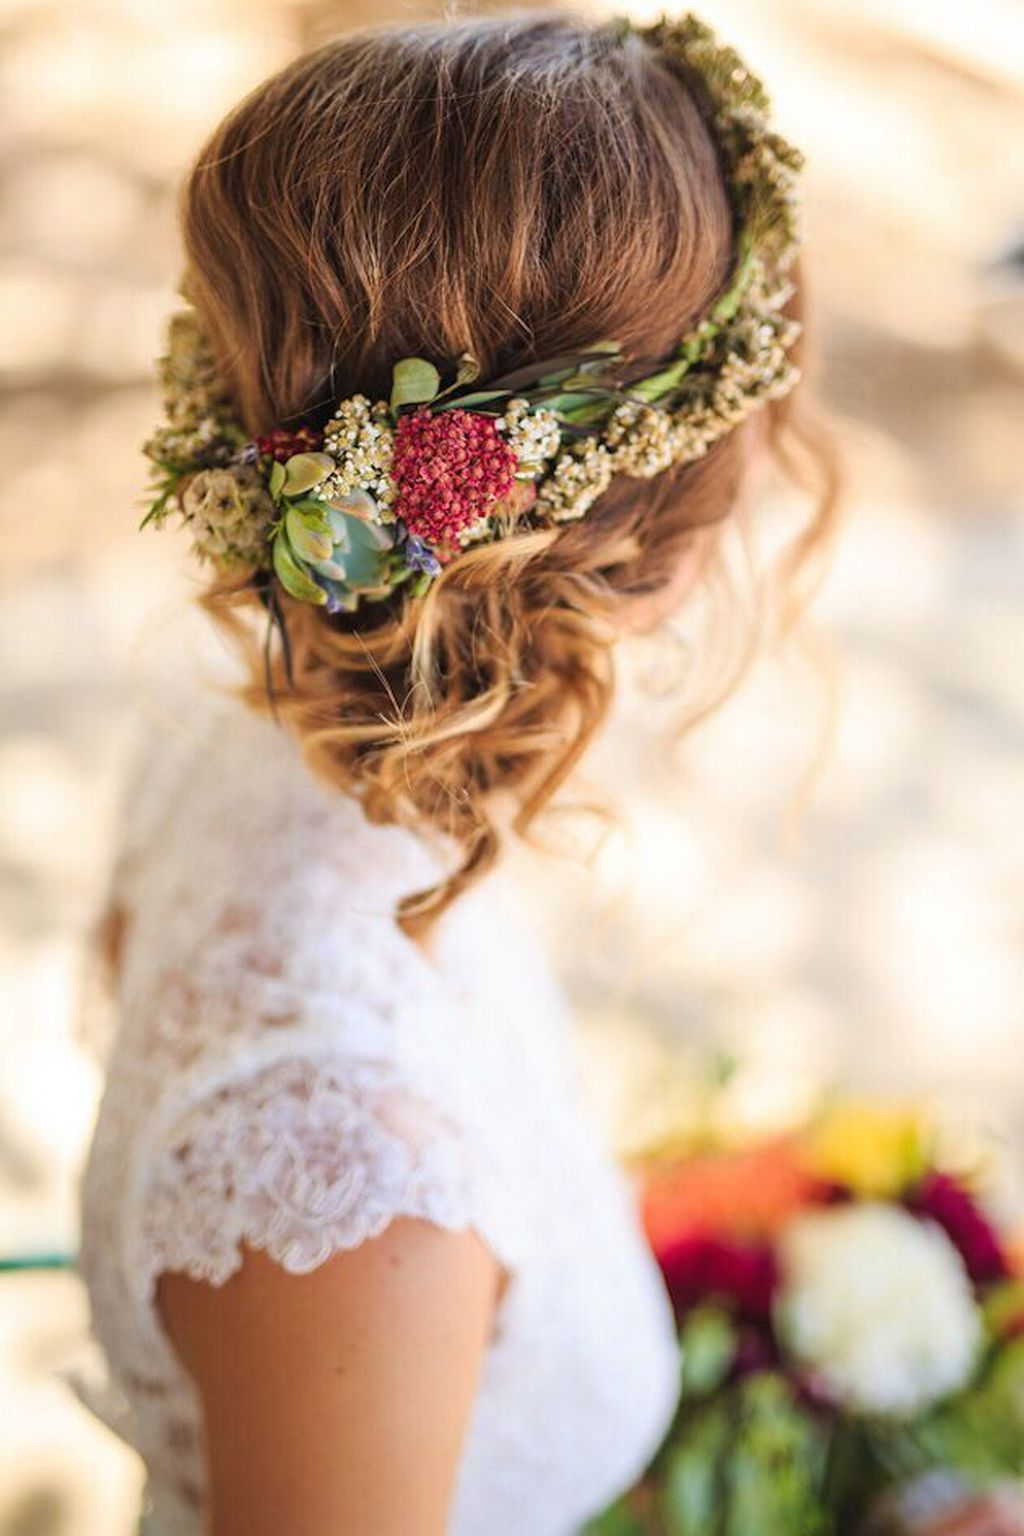 44 awesome spring summer wedding hairstyles ideas with flowers spring summer wedding hairstyles ideas with flowers httpsfashioomo2018042244 awesome spring summer wedding hairstyles ideas with flowers izmirmasajfo